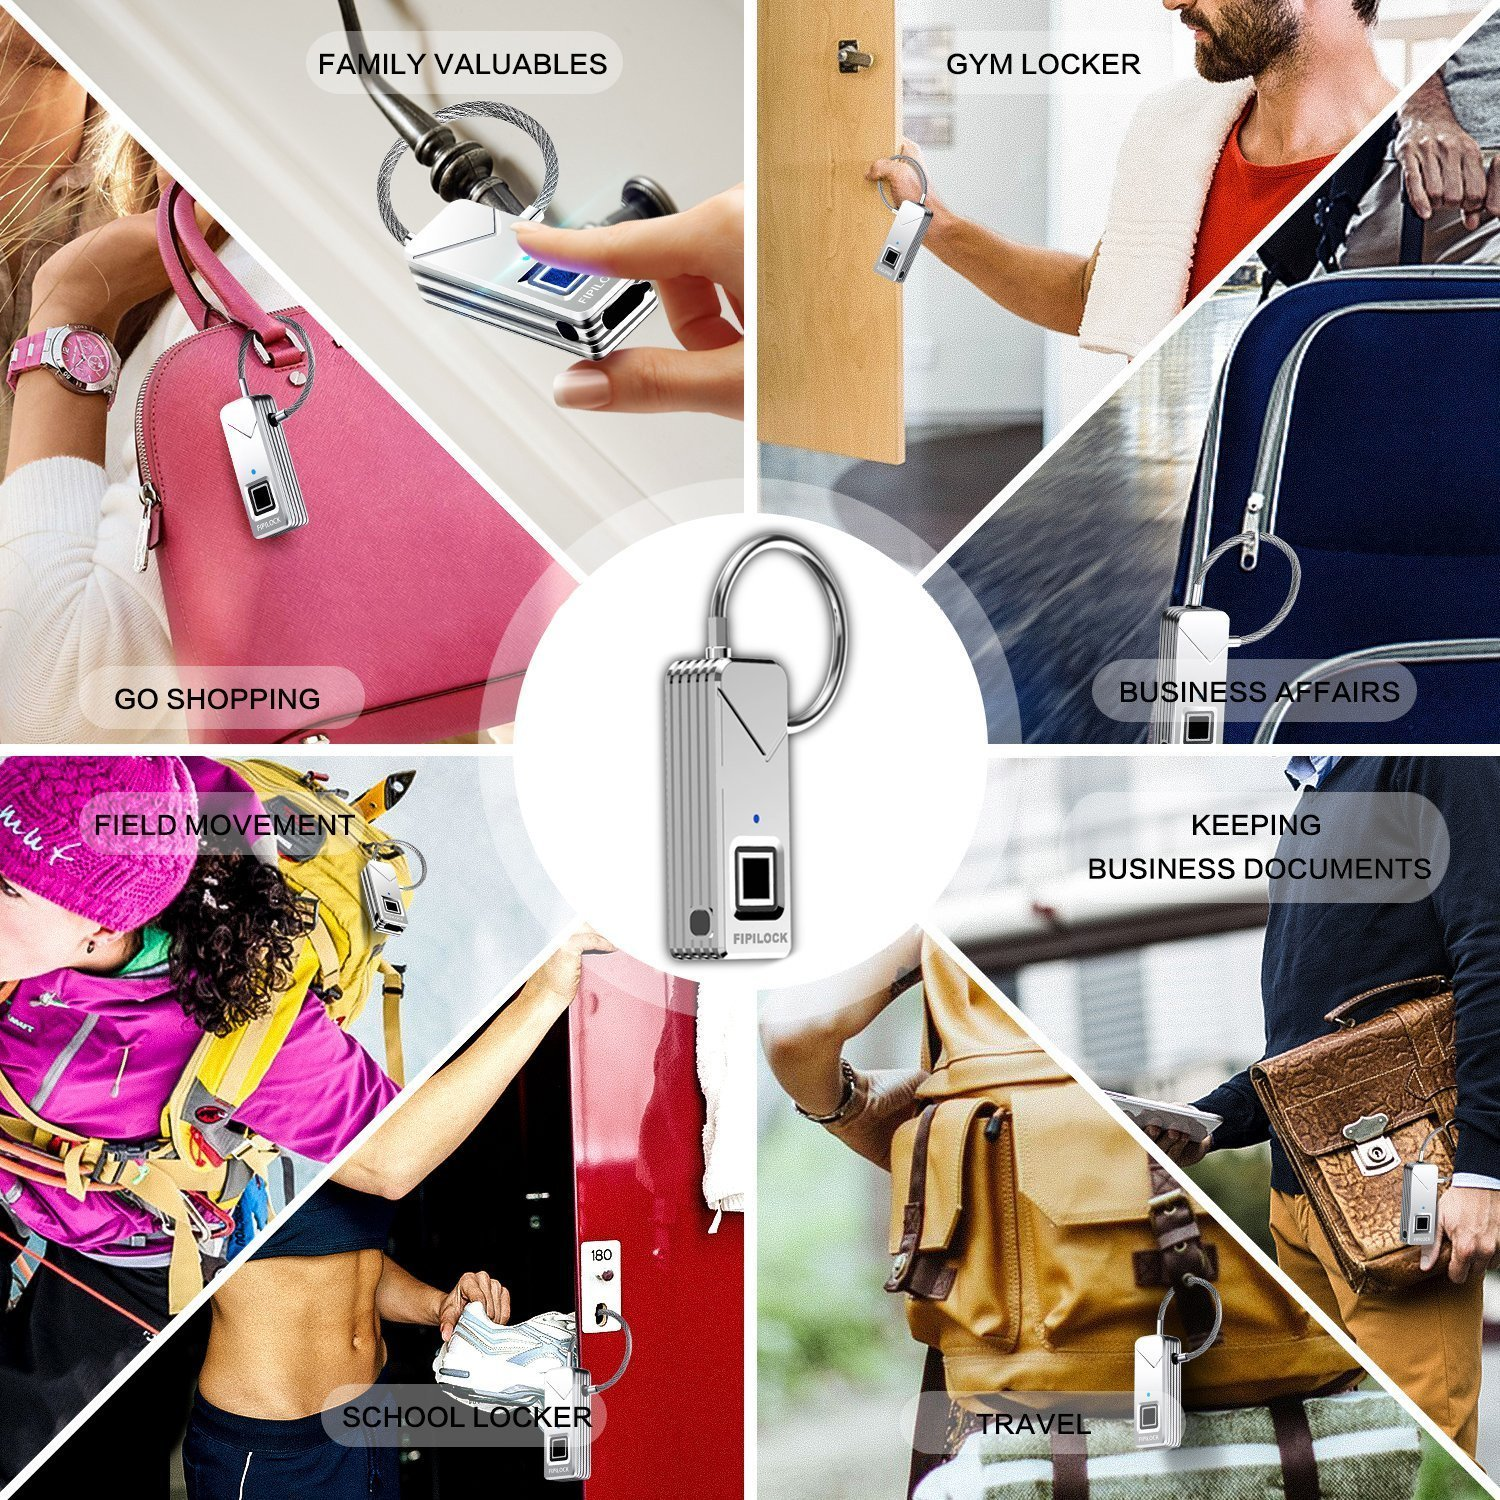 YAHEY Fingerprint Lock, Portable Smart Biometric Padlock Security No Password Waterproof and Anti-Theft Padlock for Golf Bag Suitcase, Gym Locker, Cupboard, Drawer Bike and More(Sliver) by YAHEY (Image #7)